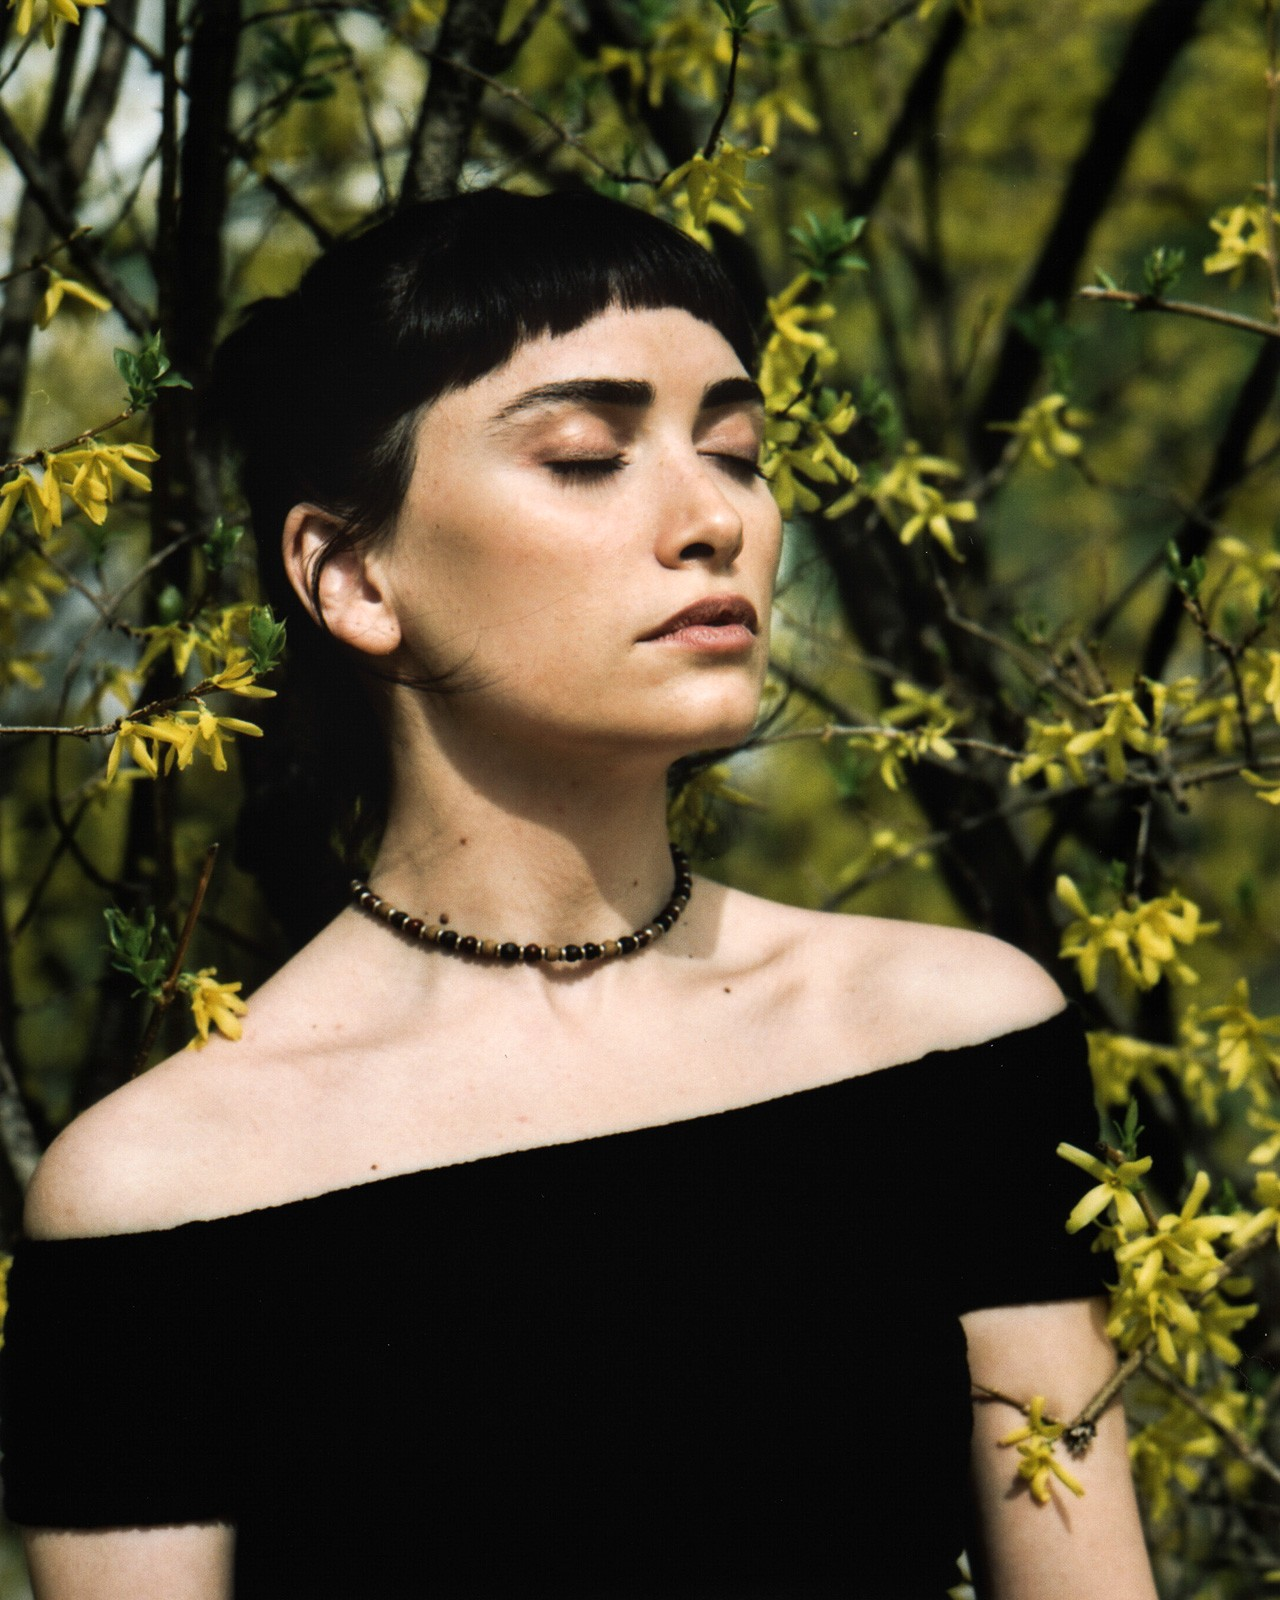 young woman with black top in bush of flowers